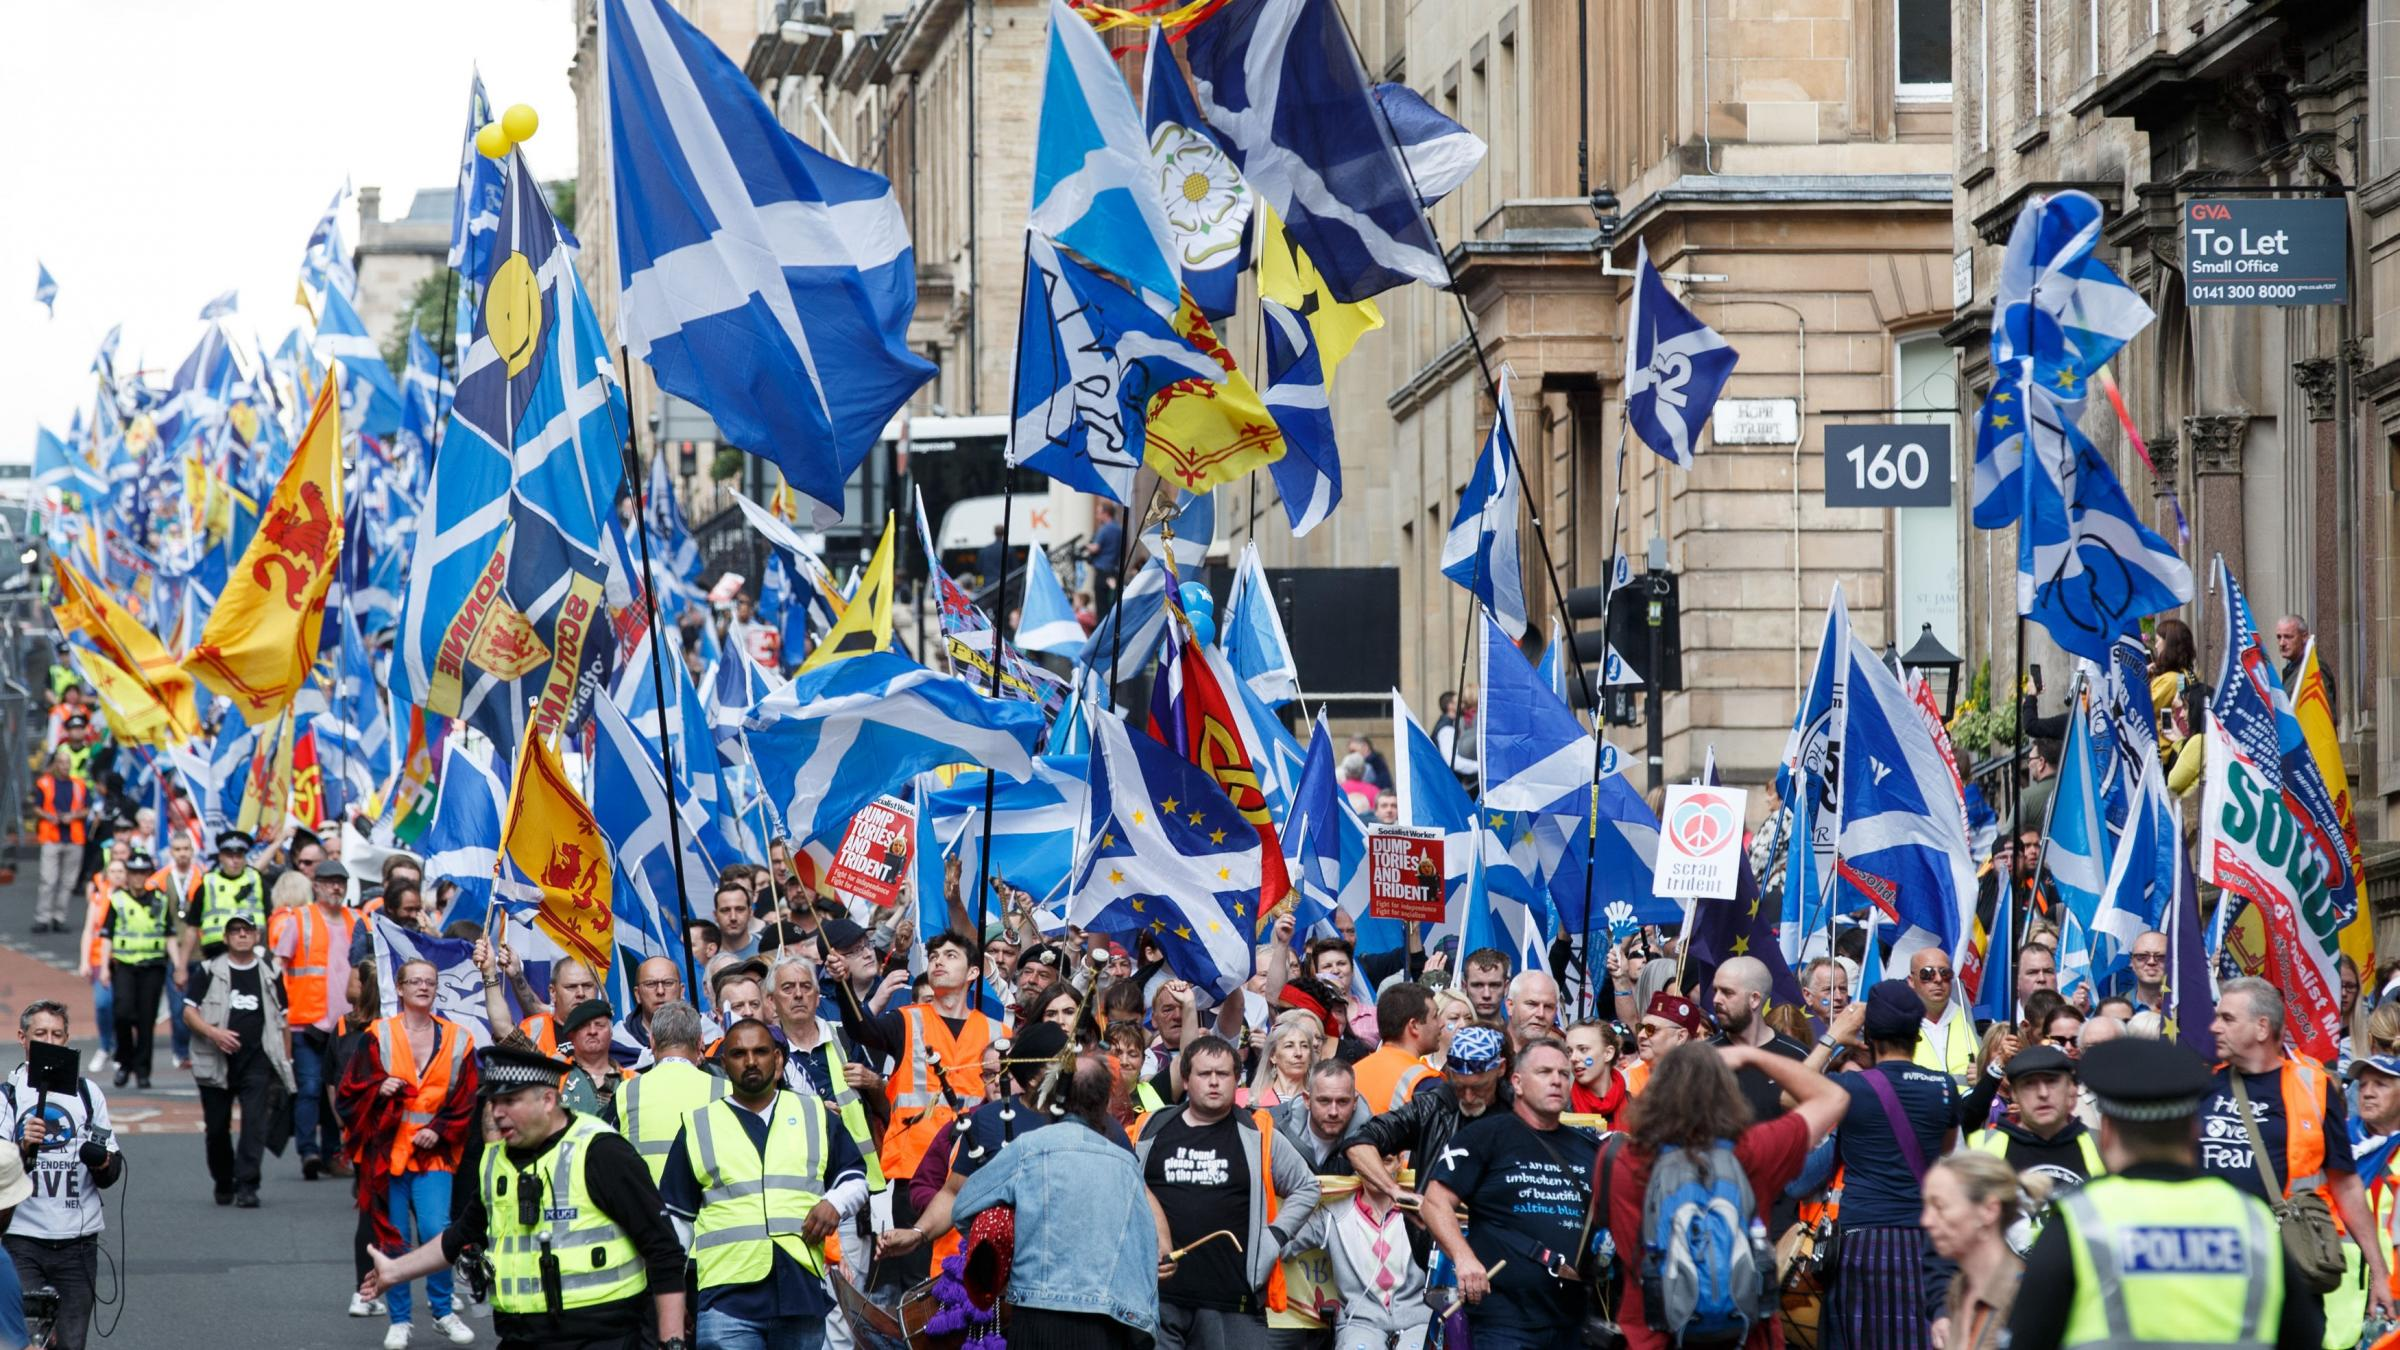 Revealed: Number of Scots who would vote to remain in UK in new referendum